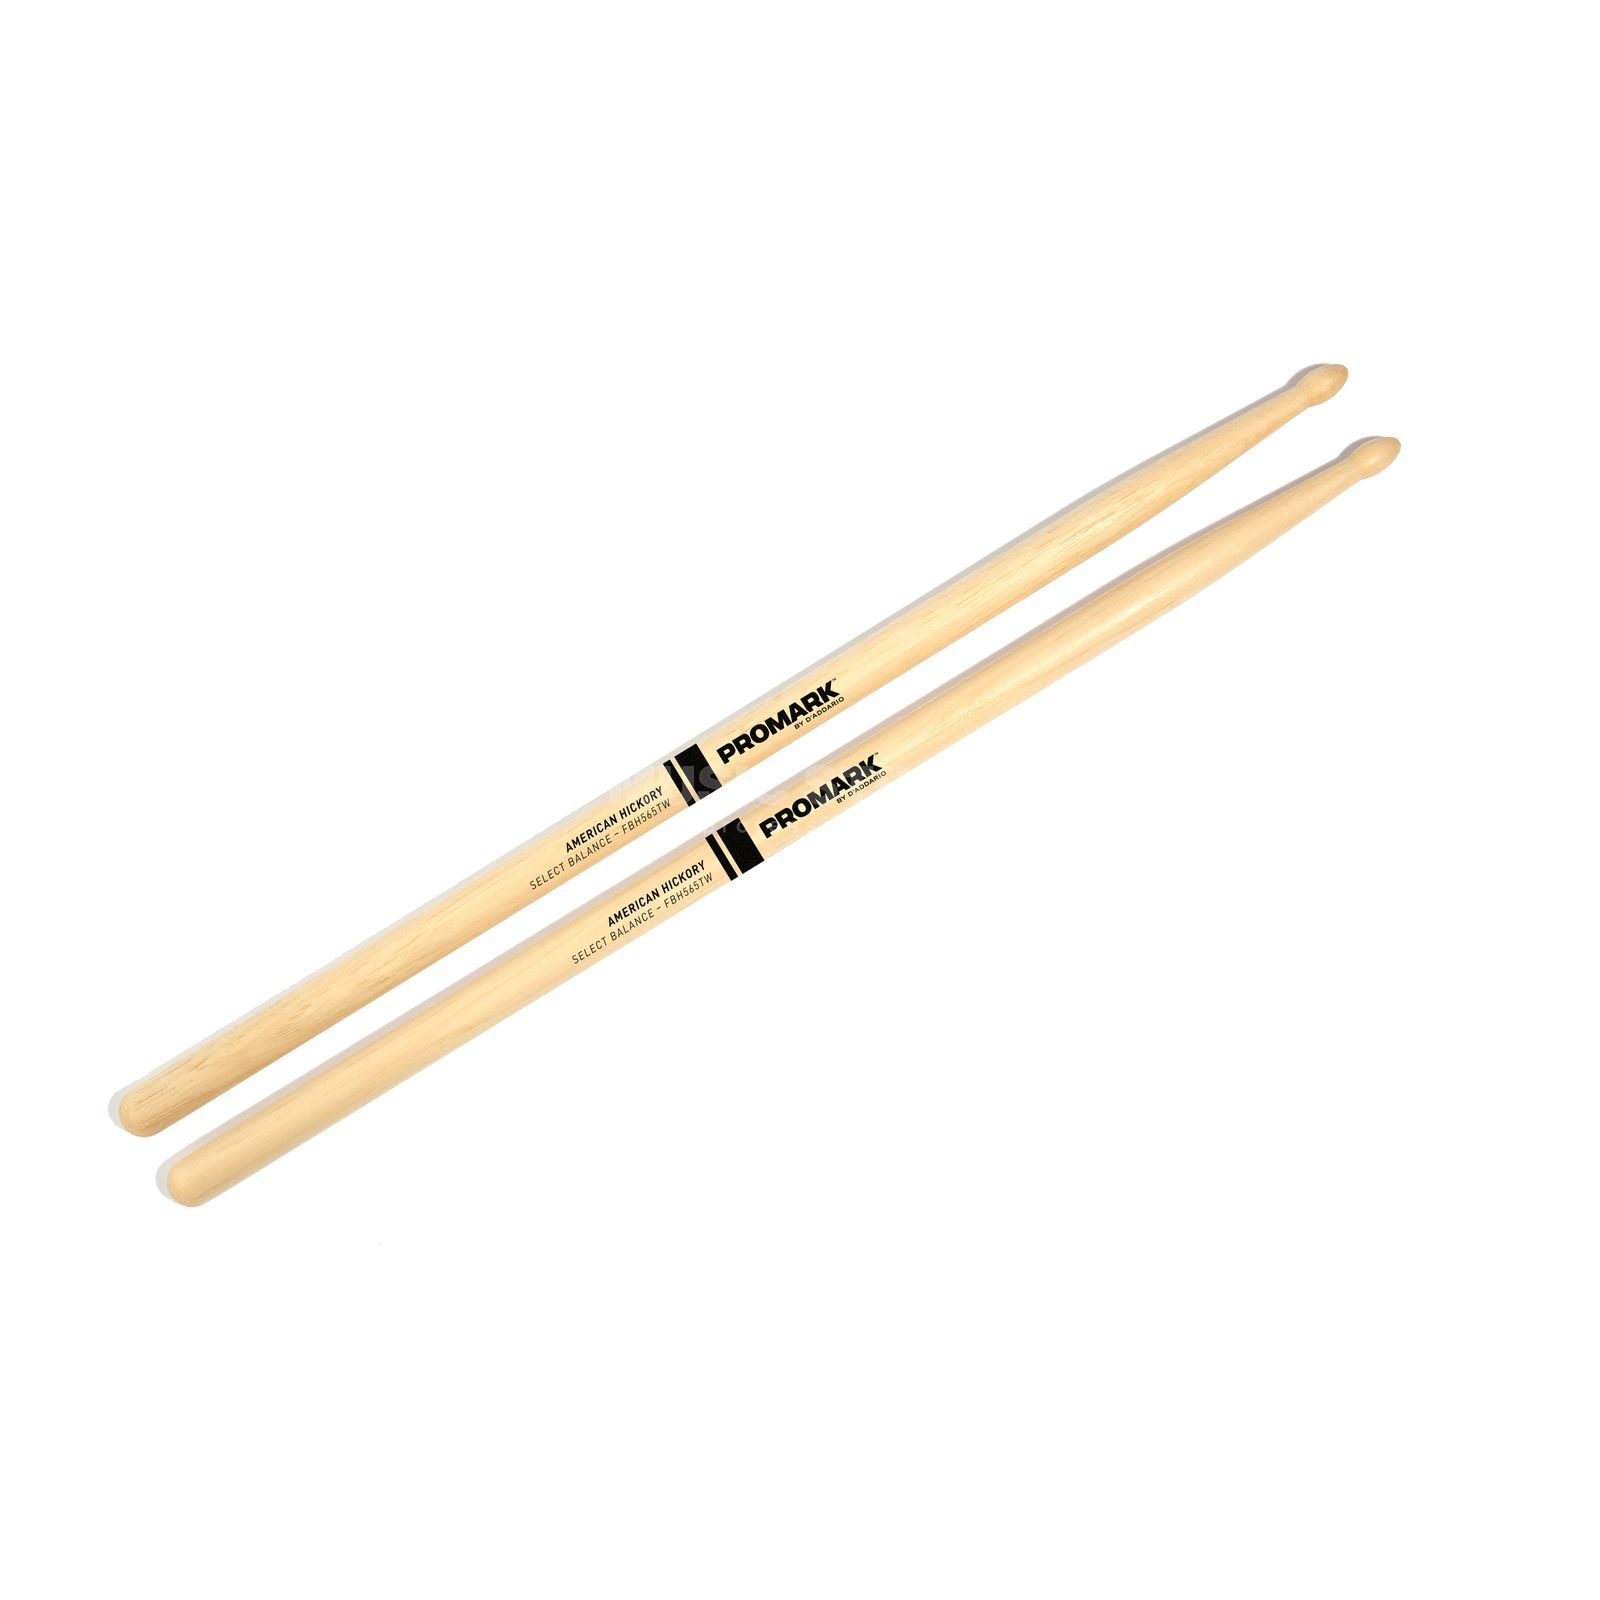 PRO-MARK Select Balance Sticks FBH565TW Forward Balance, Wood Tip Produktbild